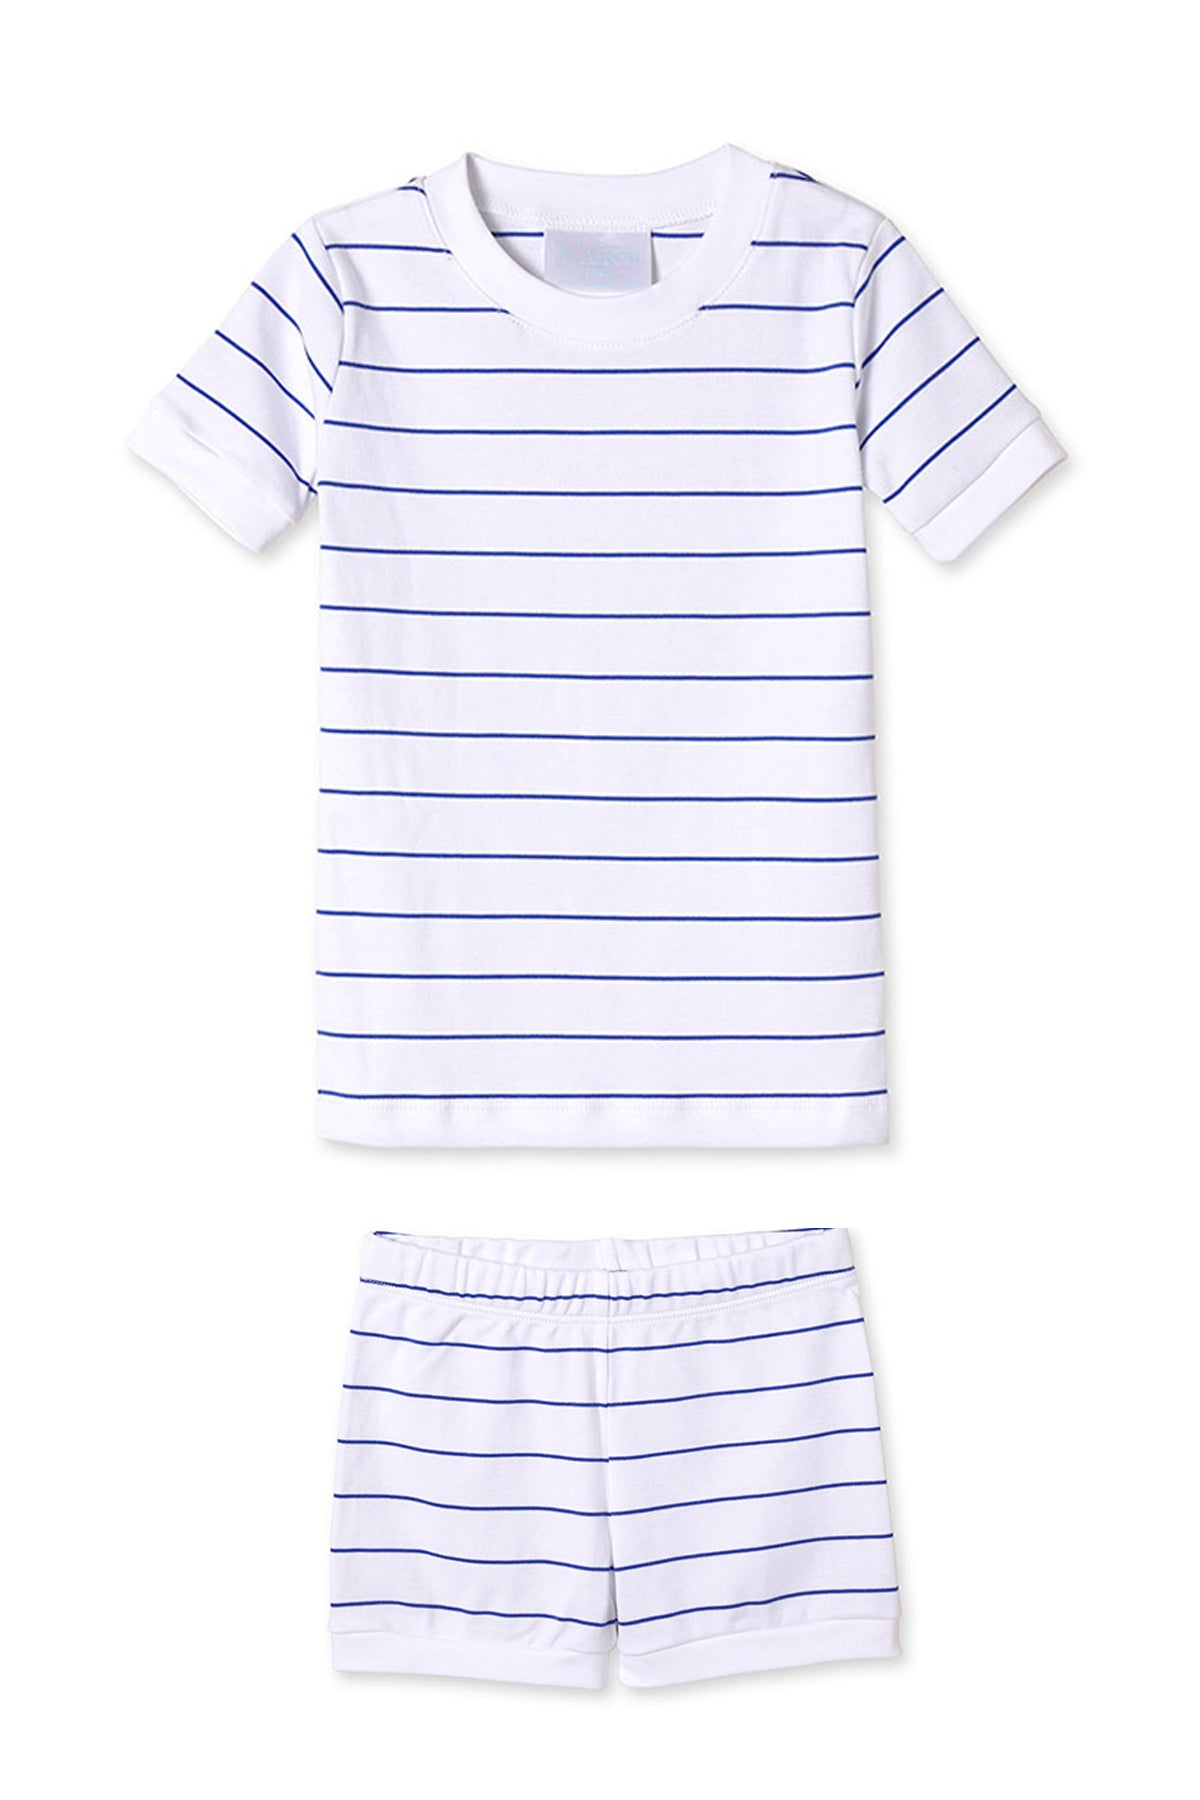 Kids Shorts Set in Cobalt